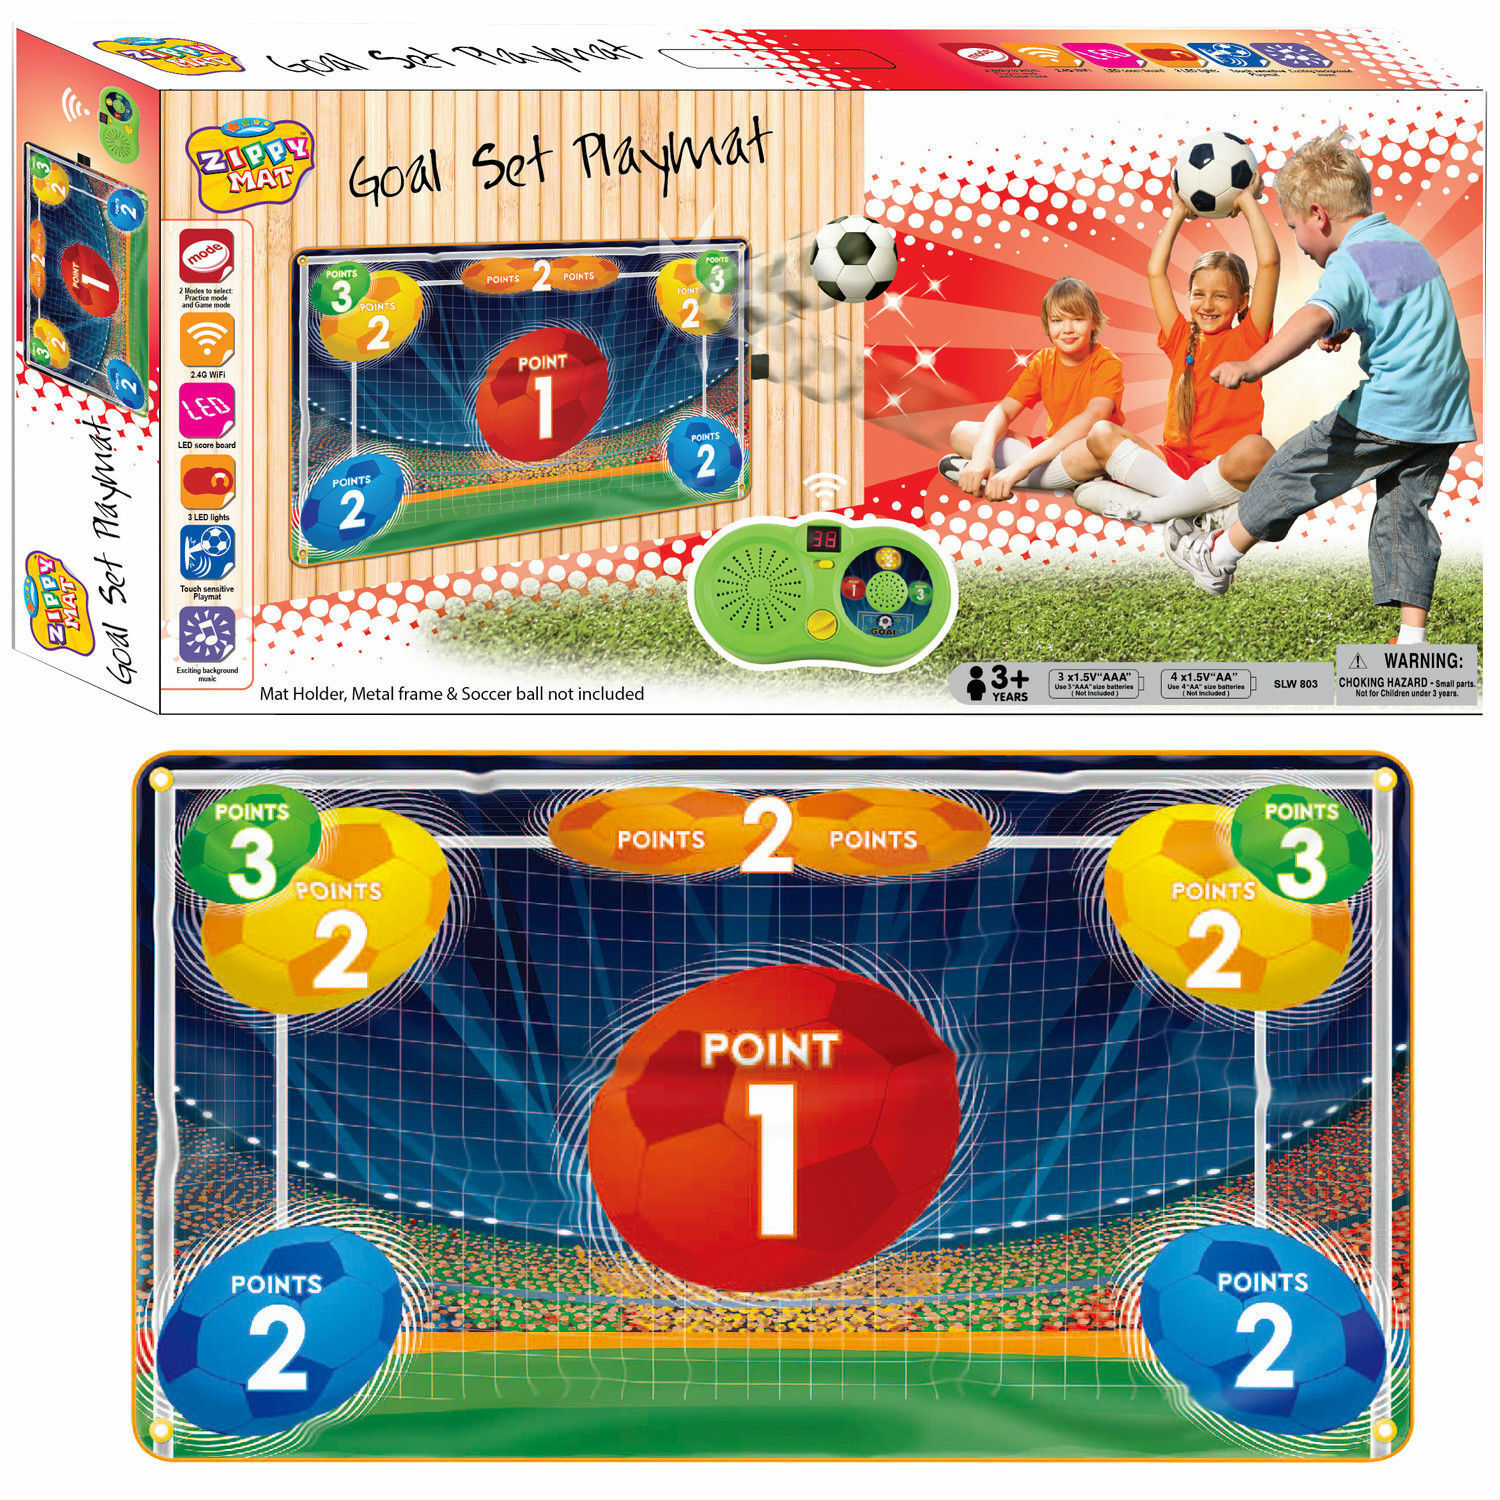 Electronic Kids Soccer Goal Set Musical Play mat w LED Score Board Fun Game Toy